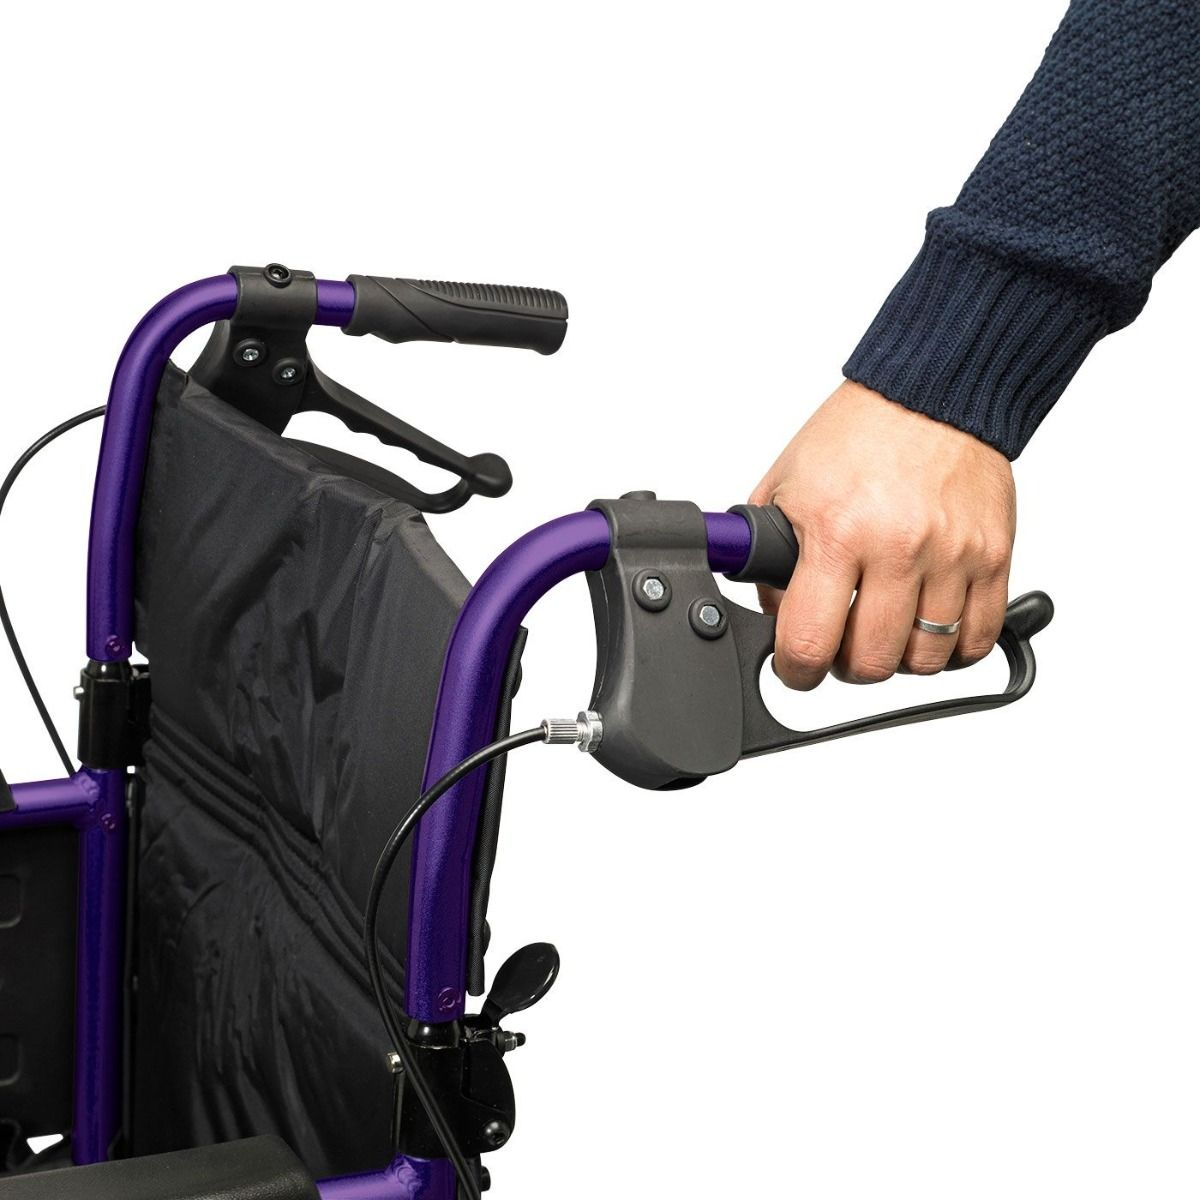 The Days Narrow Width Escape Lite Wheelchair features attendant-operated brakes